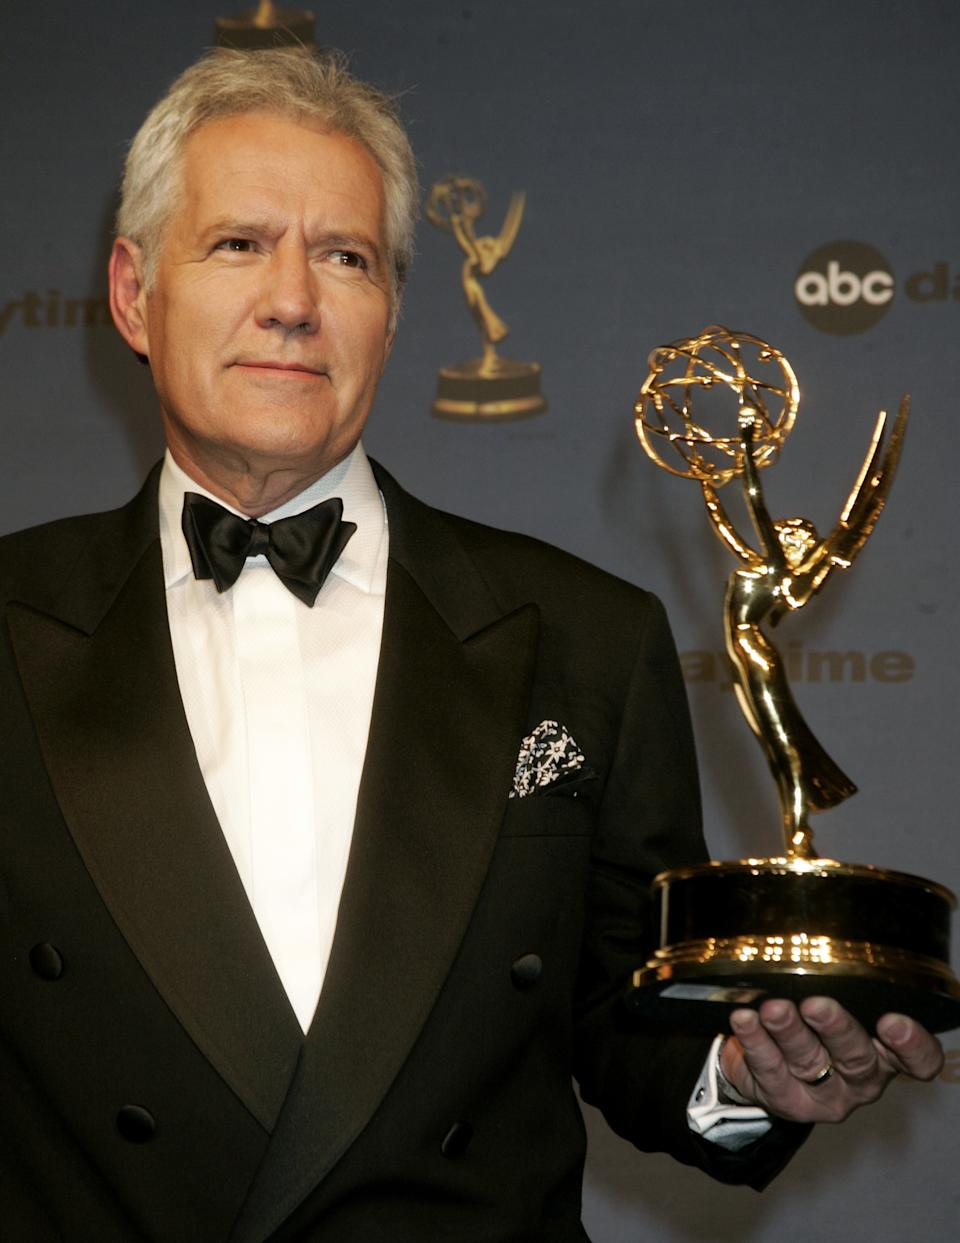 """Alex Trebek, host of the game show """"Jeopardy"""" poses with his Emmy award at the 33rd annual Daytime Emmy Awards in Hollywood, California April 28, 2006. Trebek won as outstanding game show host. REUTERS/Fred Prouser"""